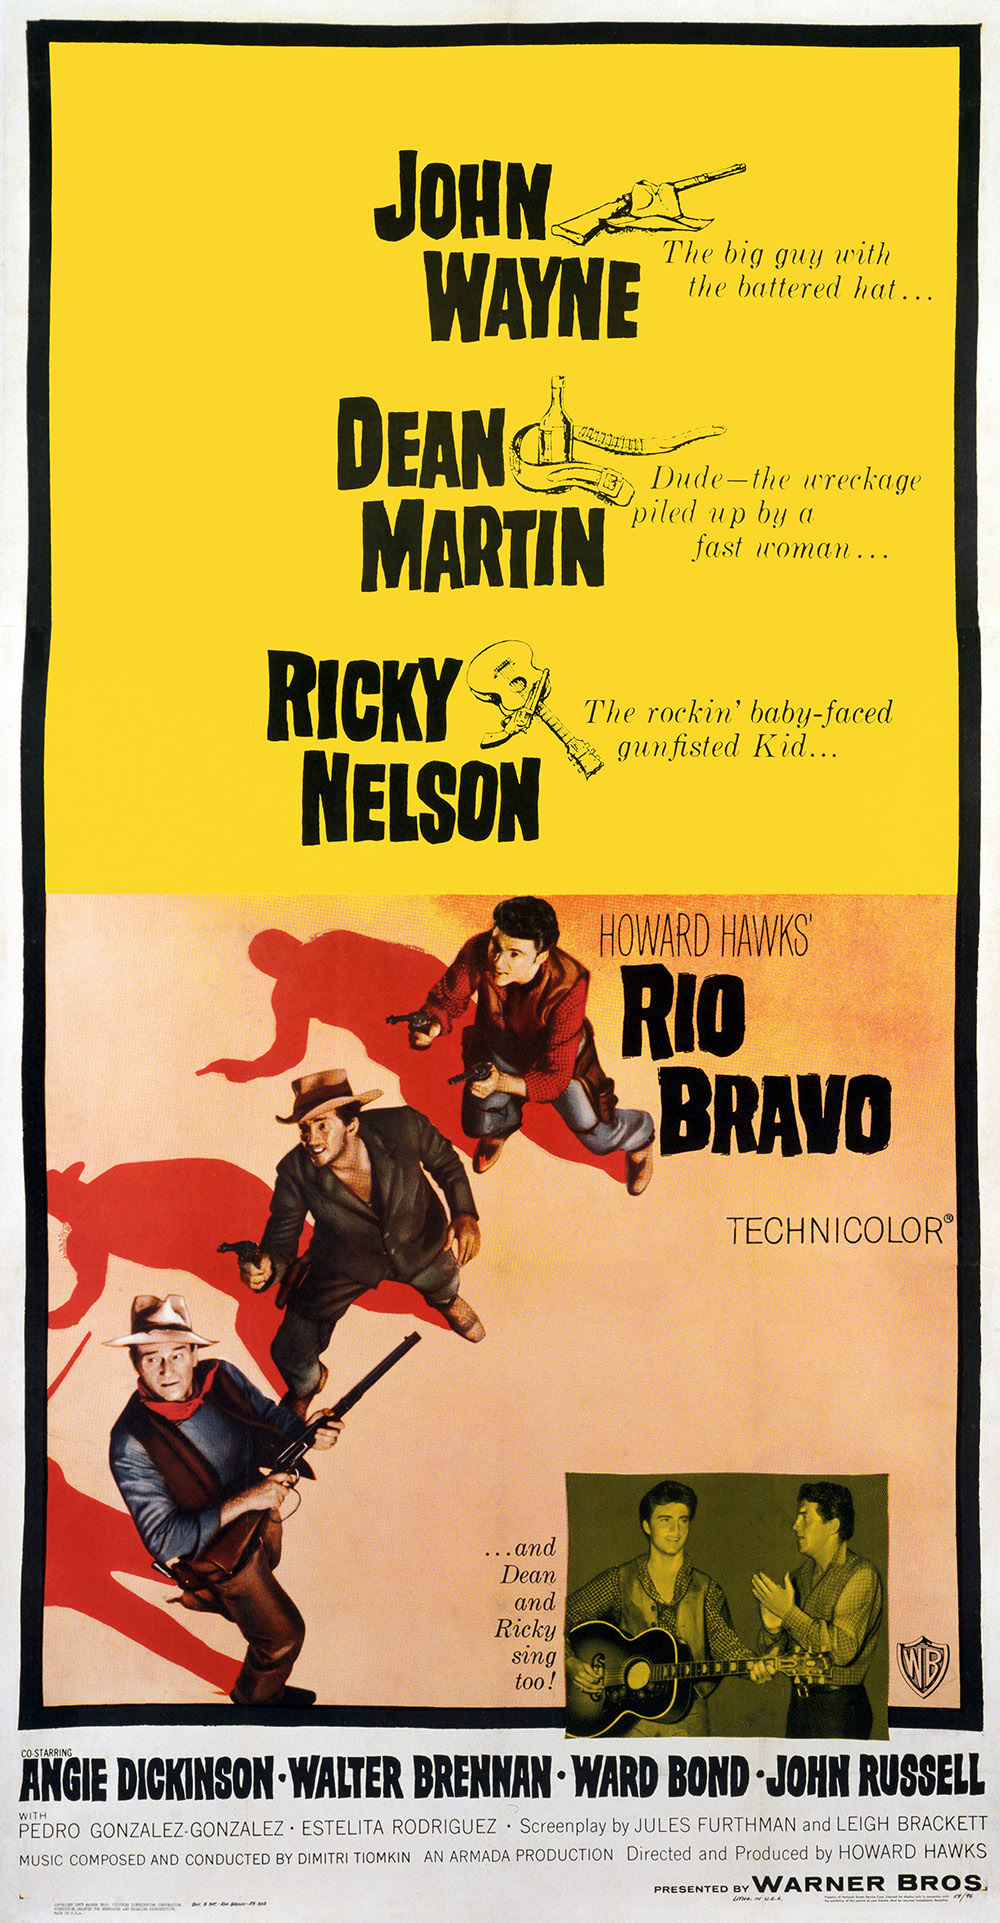 Rio Bravo original theatrical three-sheet poster